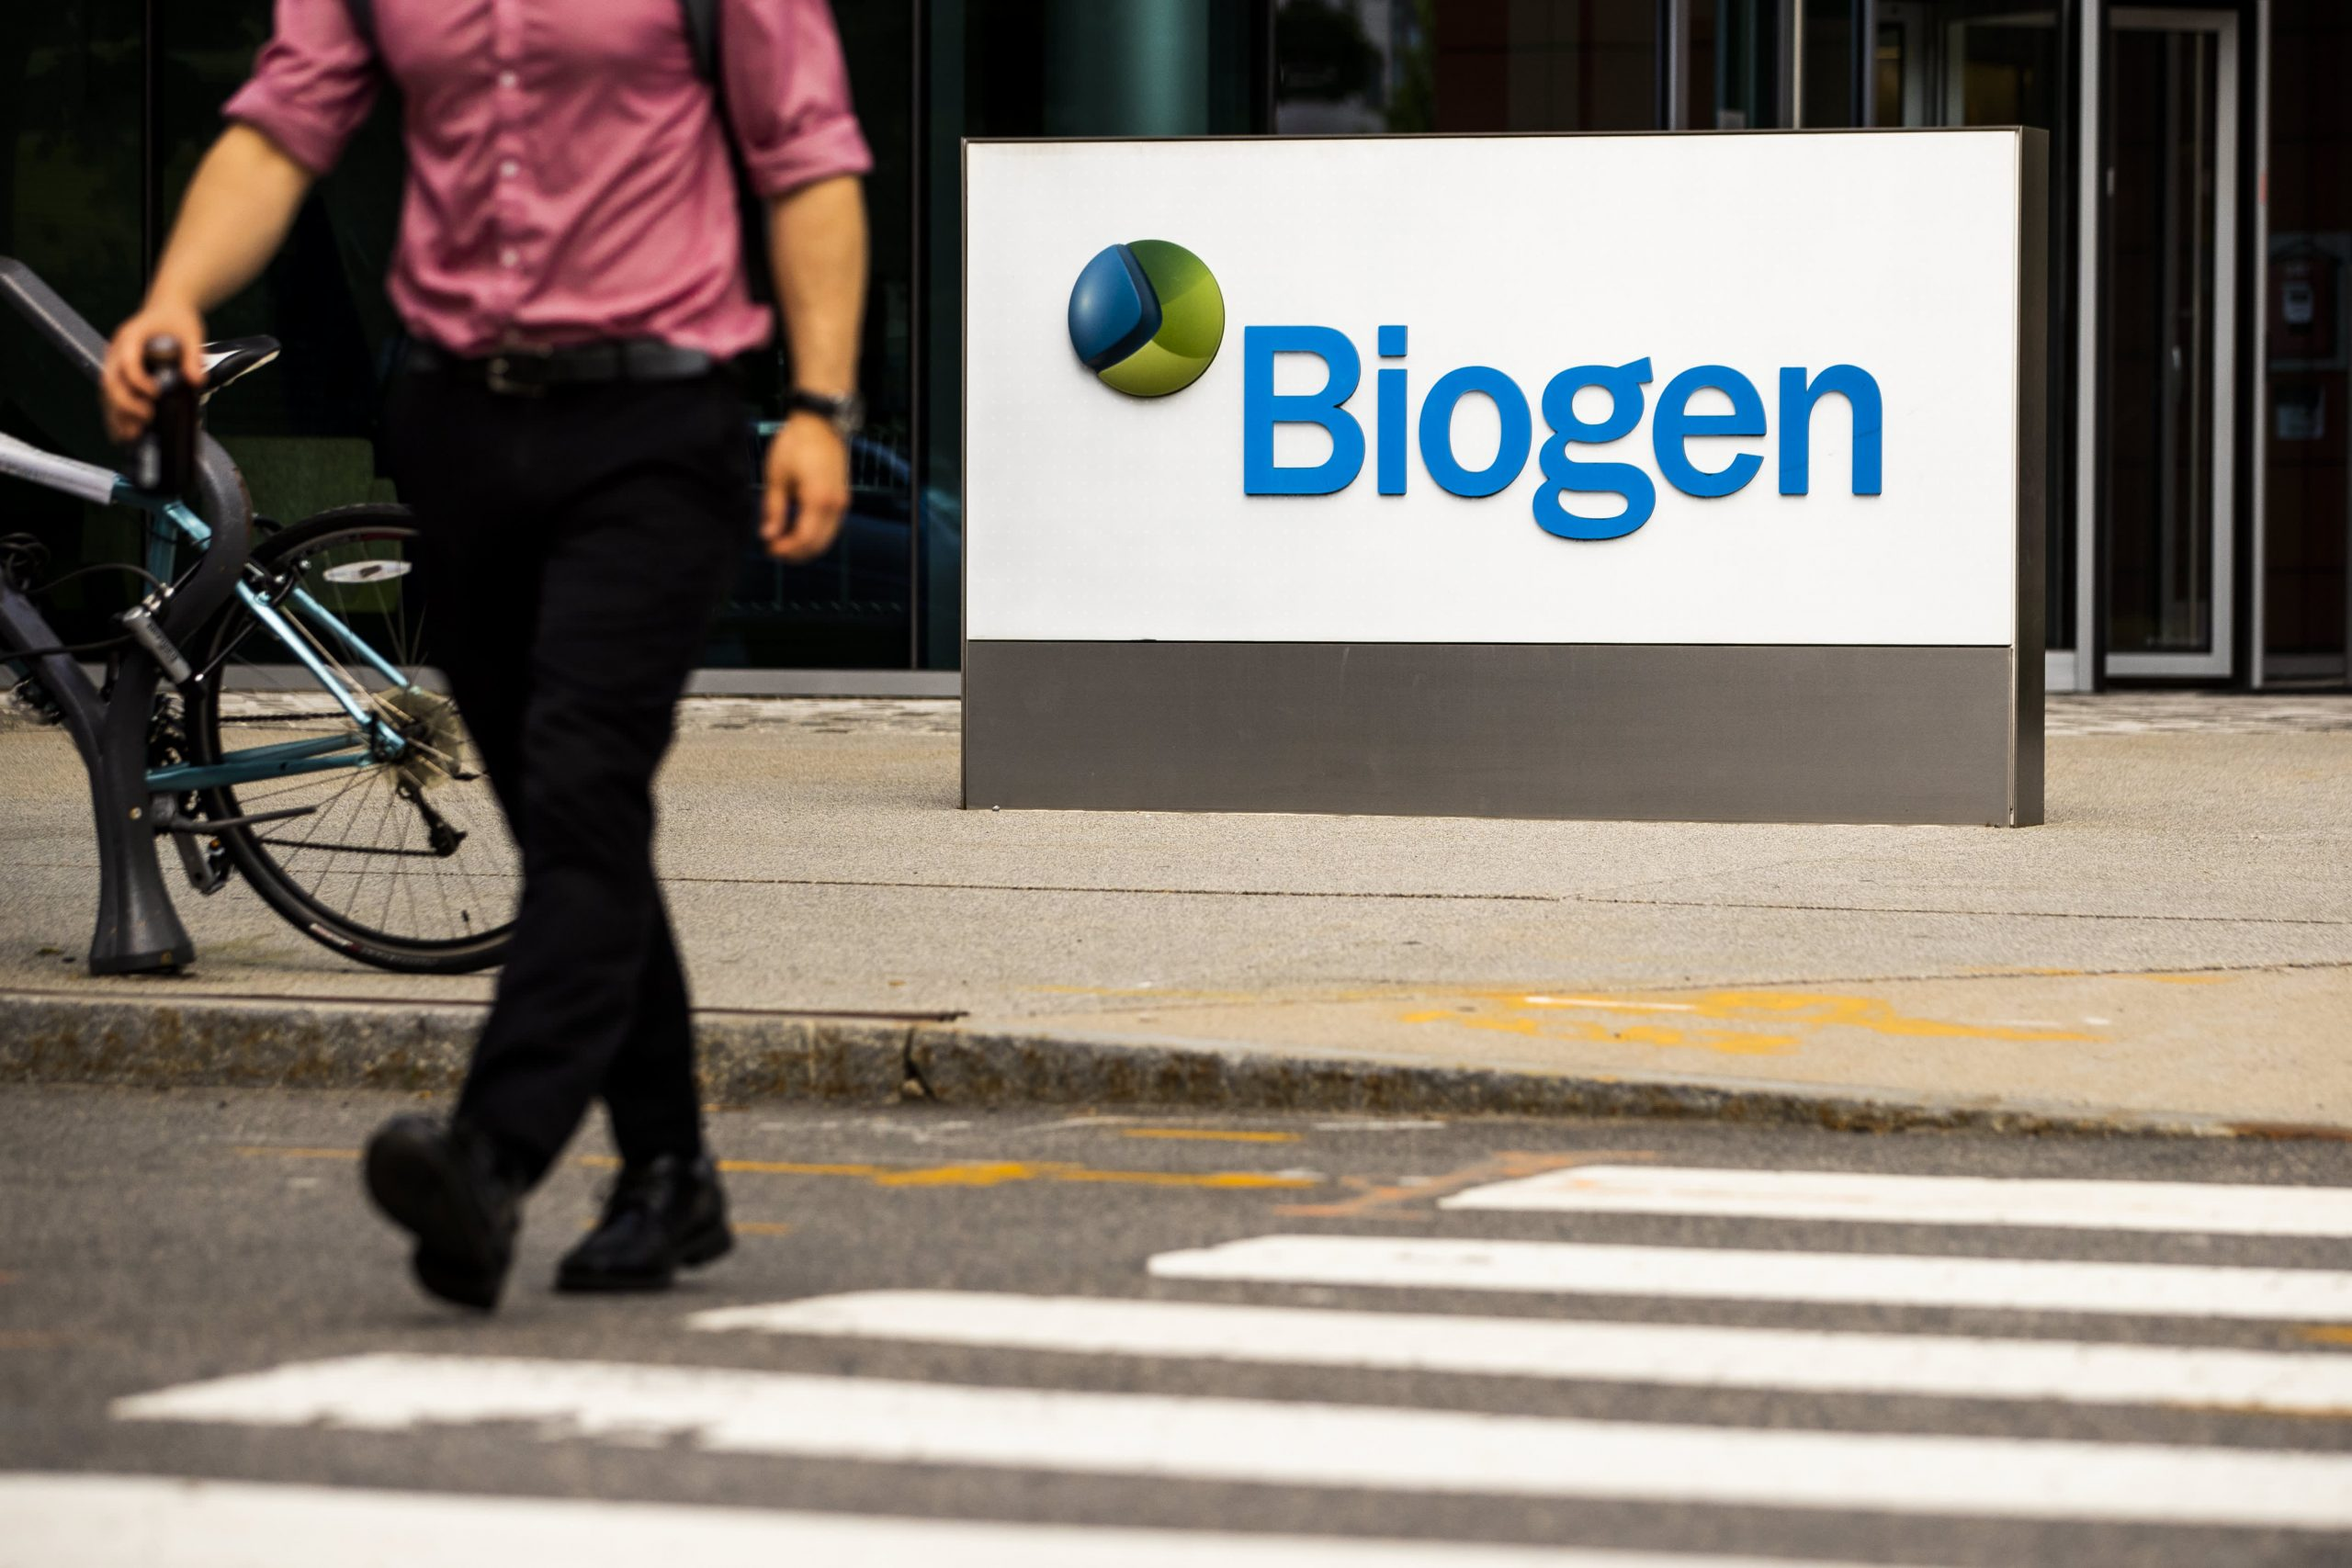 biogens-alzheimers-drug-could-cost-medicare-billions-of-dollars-a-year-report